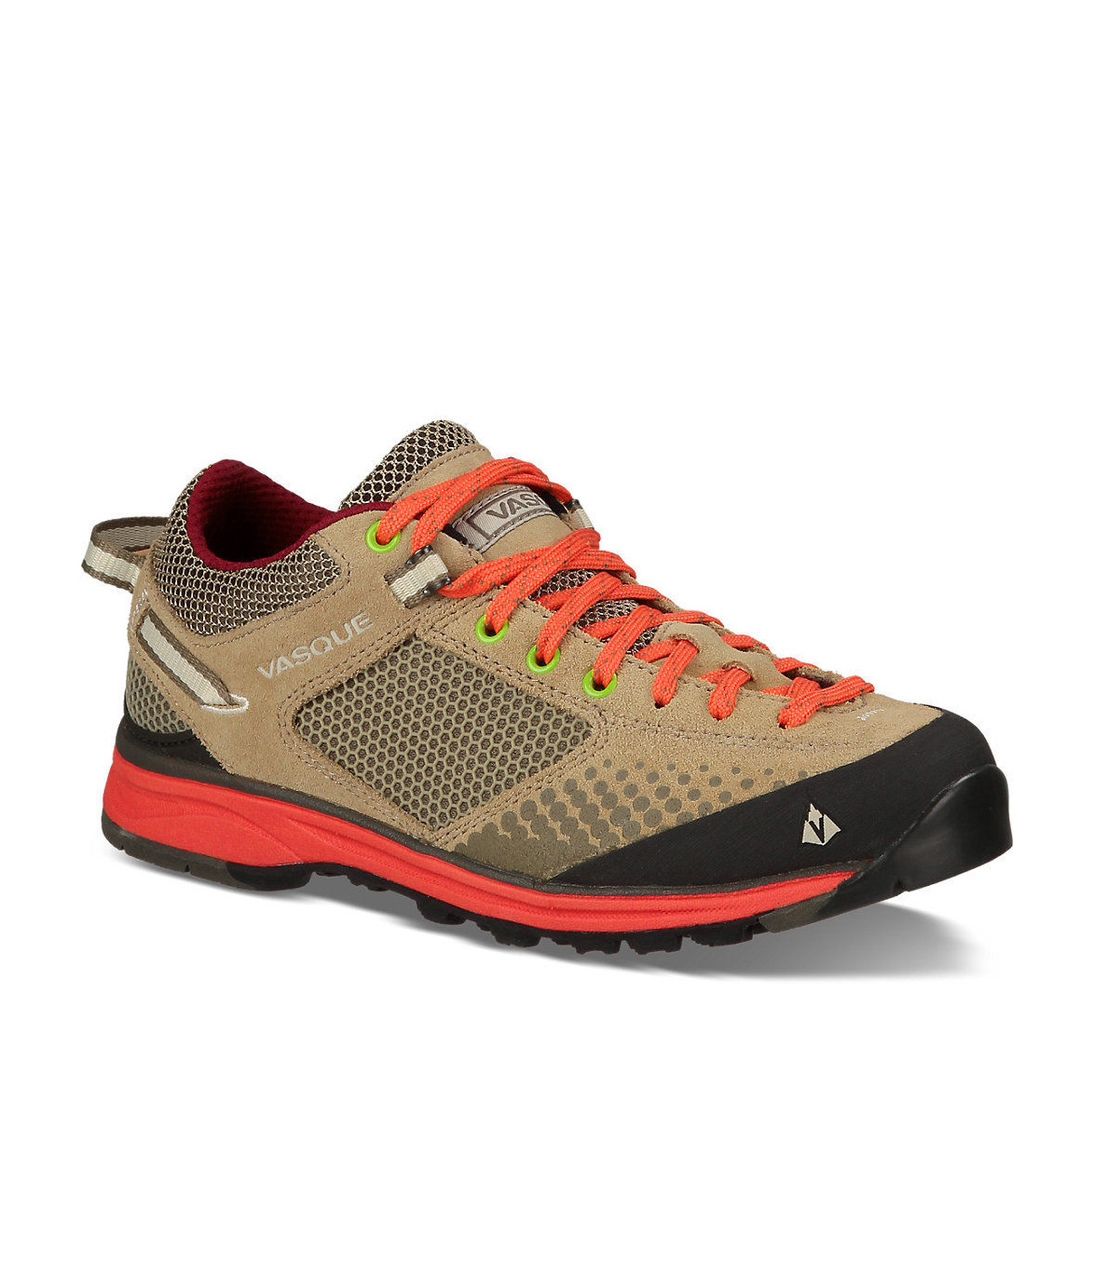 vasque w grand traverse hiking shoes price breaker